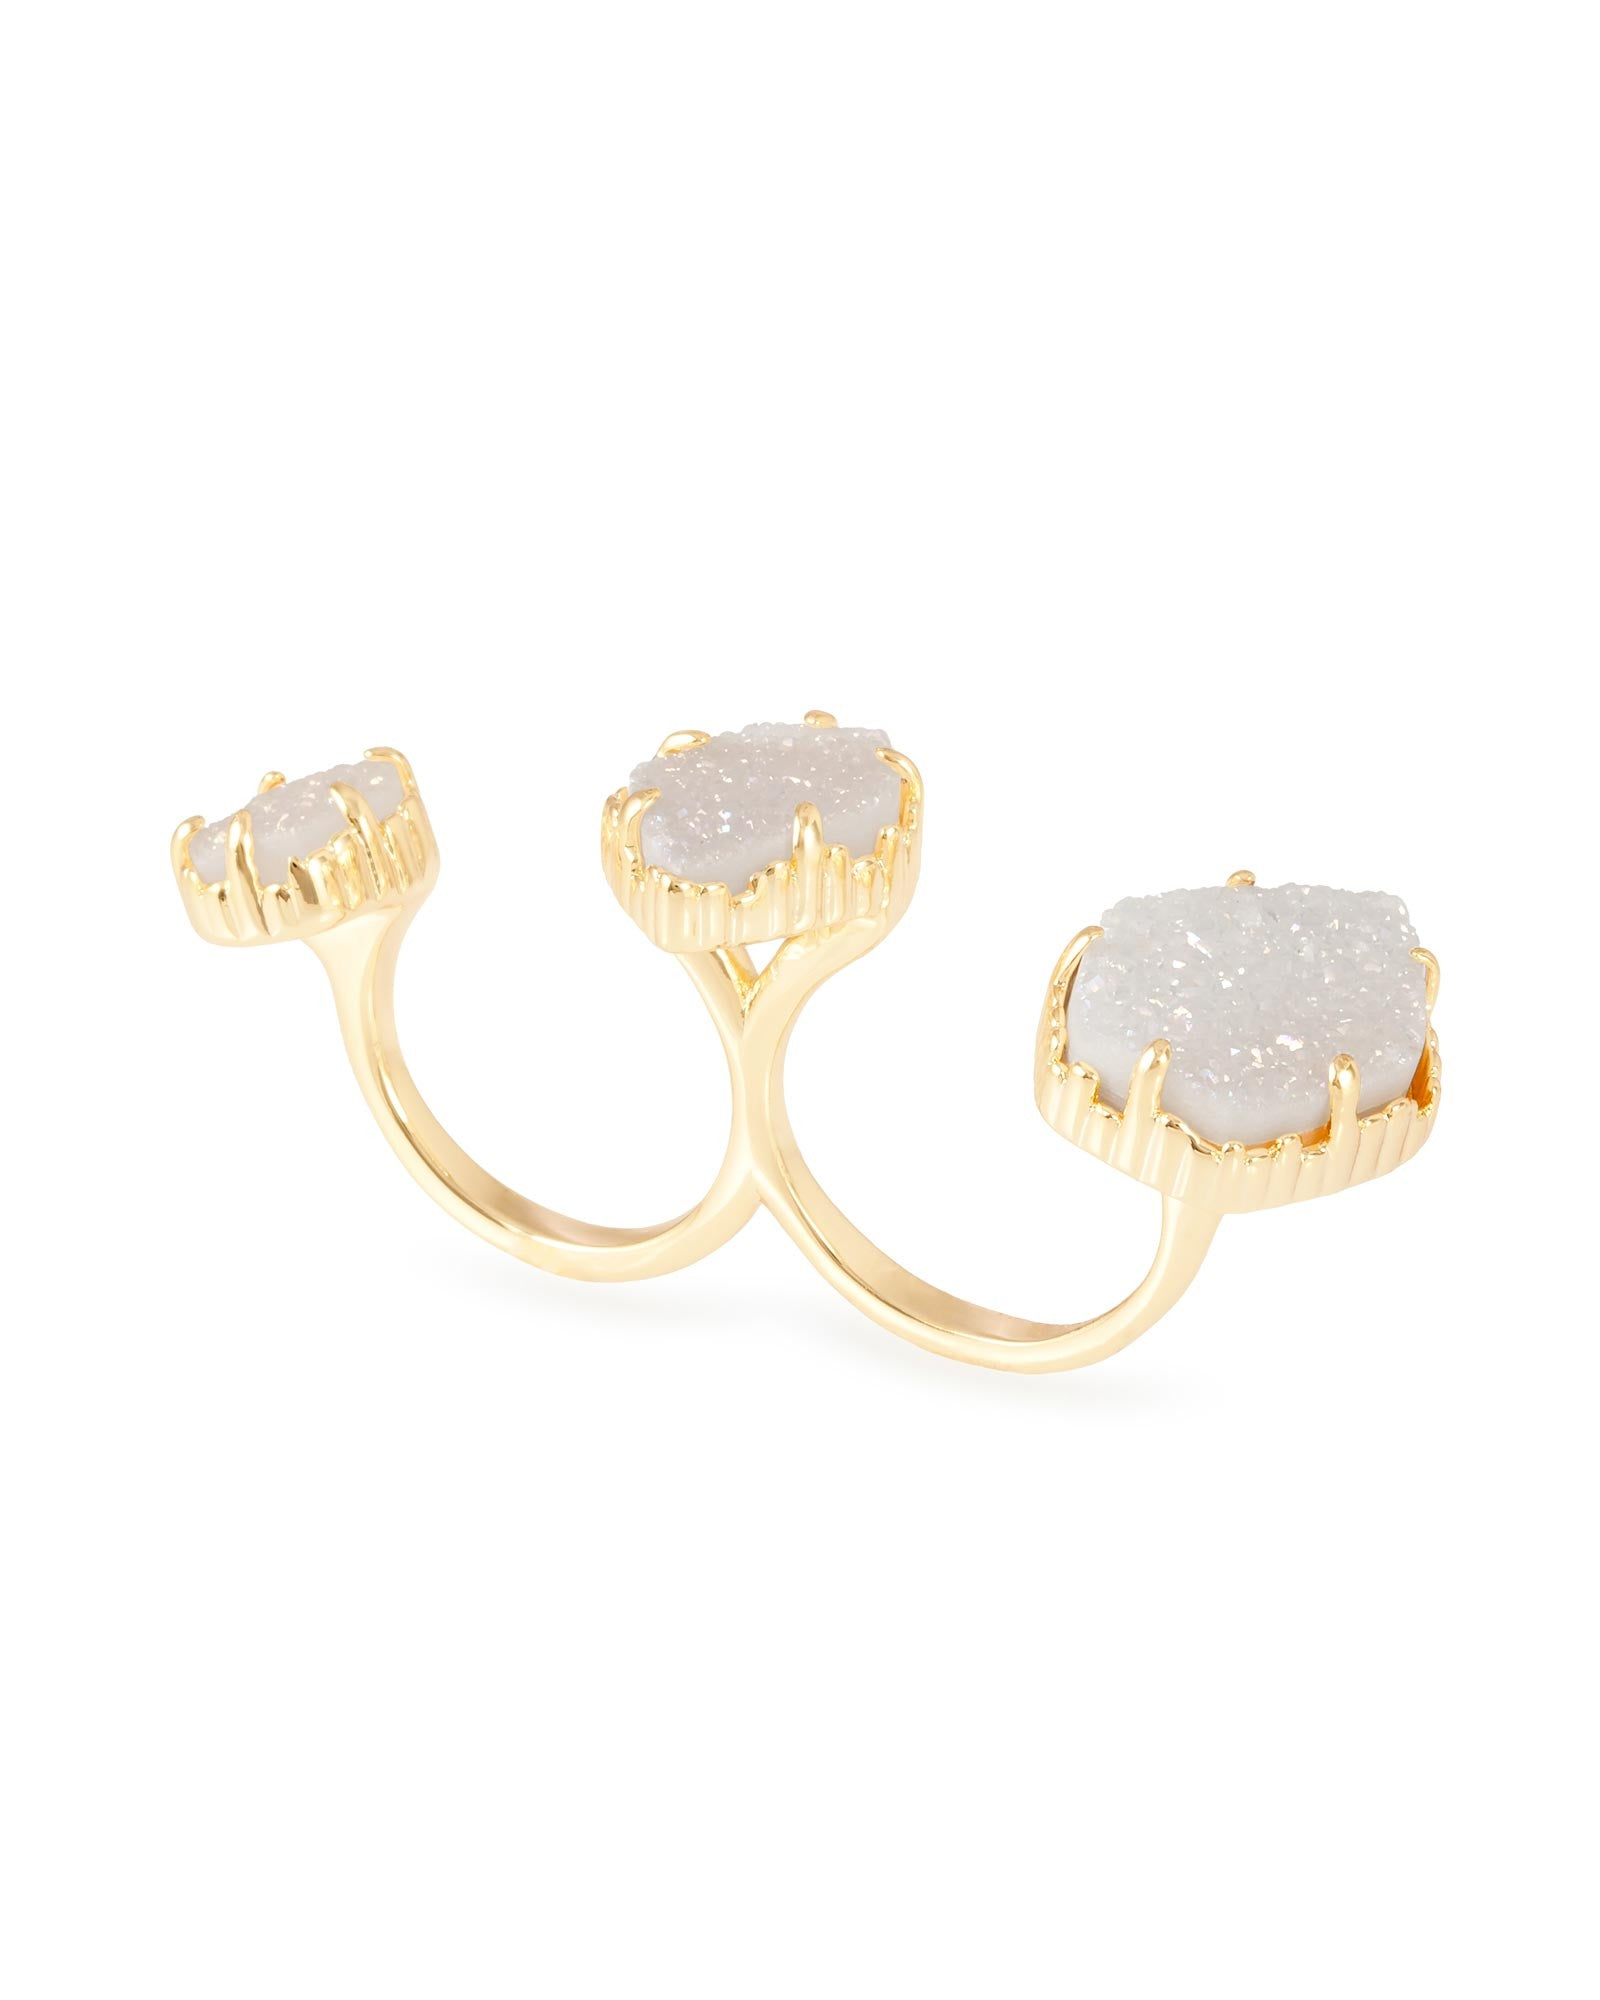 Gold Plated ring with white druzy stone